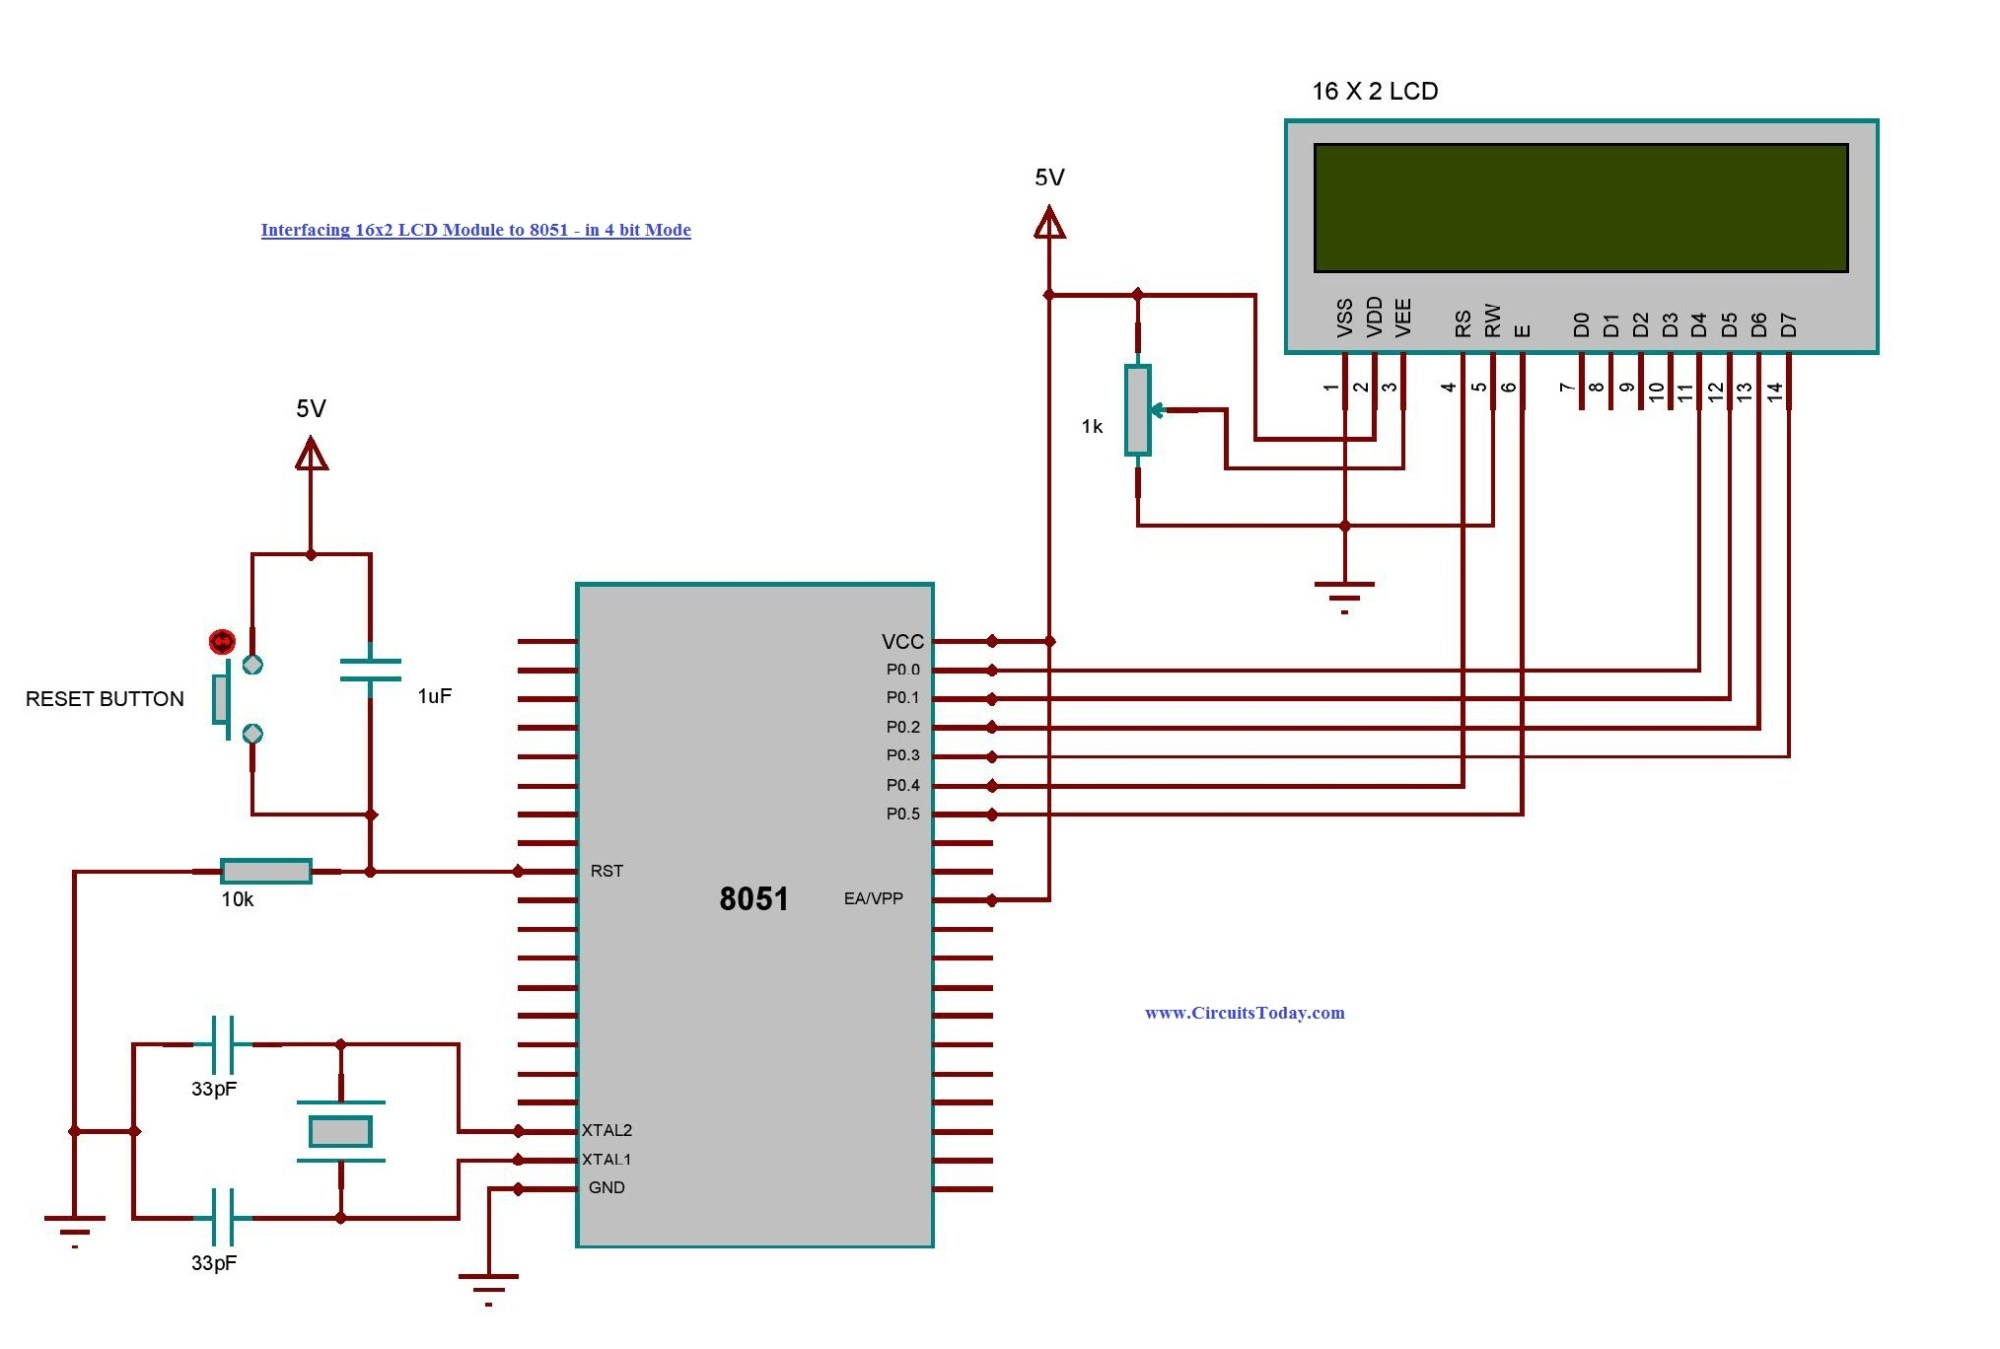 hight resolution of interfacing 8051 to 16x2 lcd module in 4 bit mode